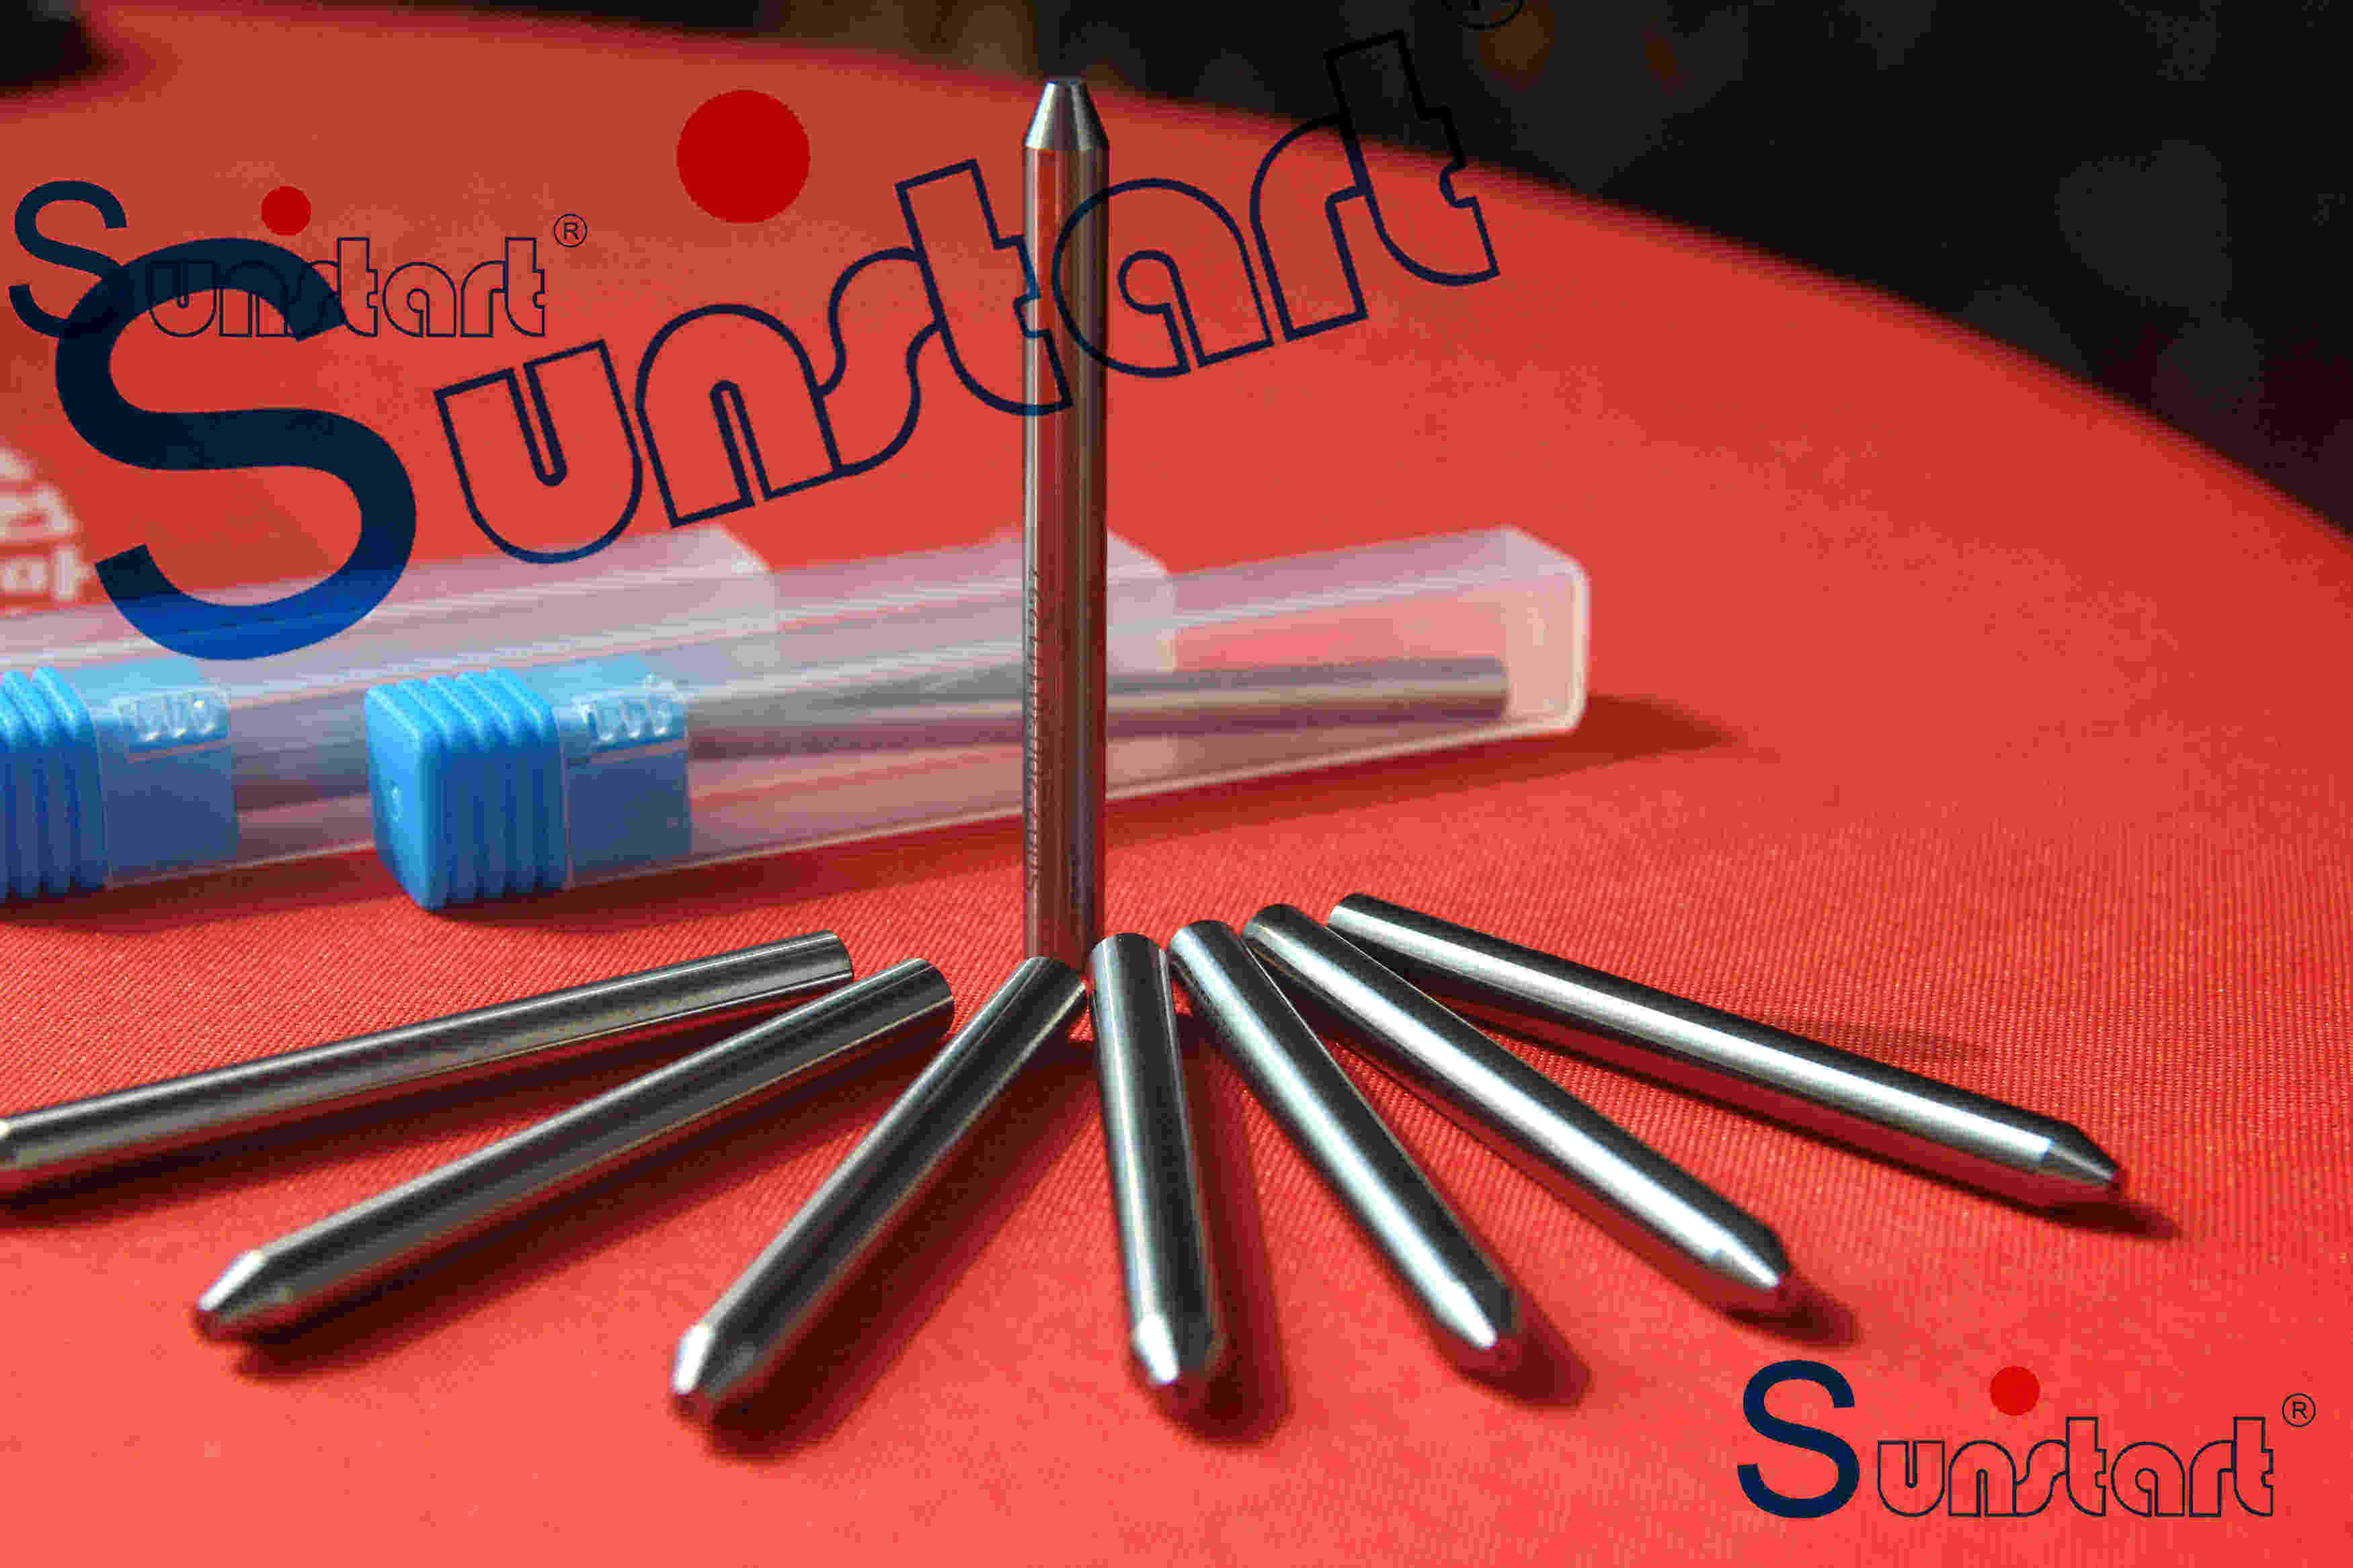 S002 Flow Style Waterjet Cutting Nozzles From Sunstart Manufacturer